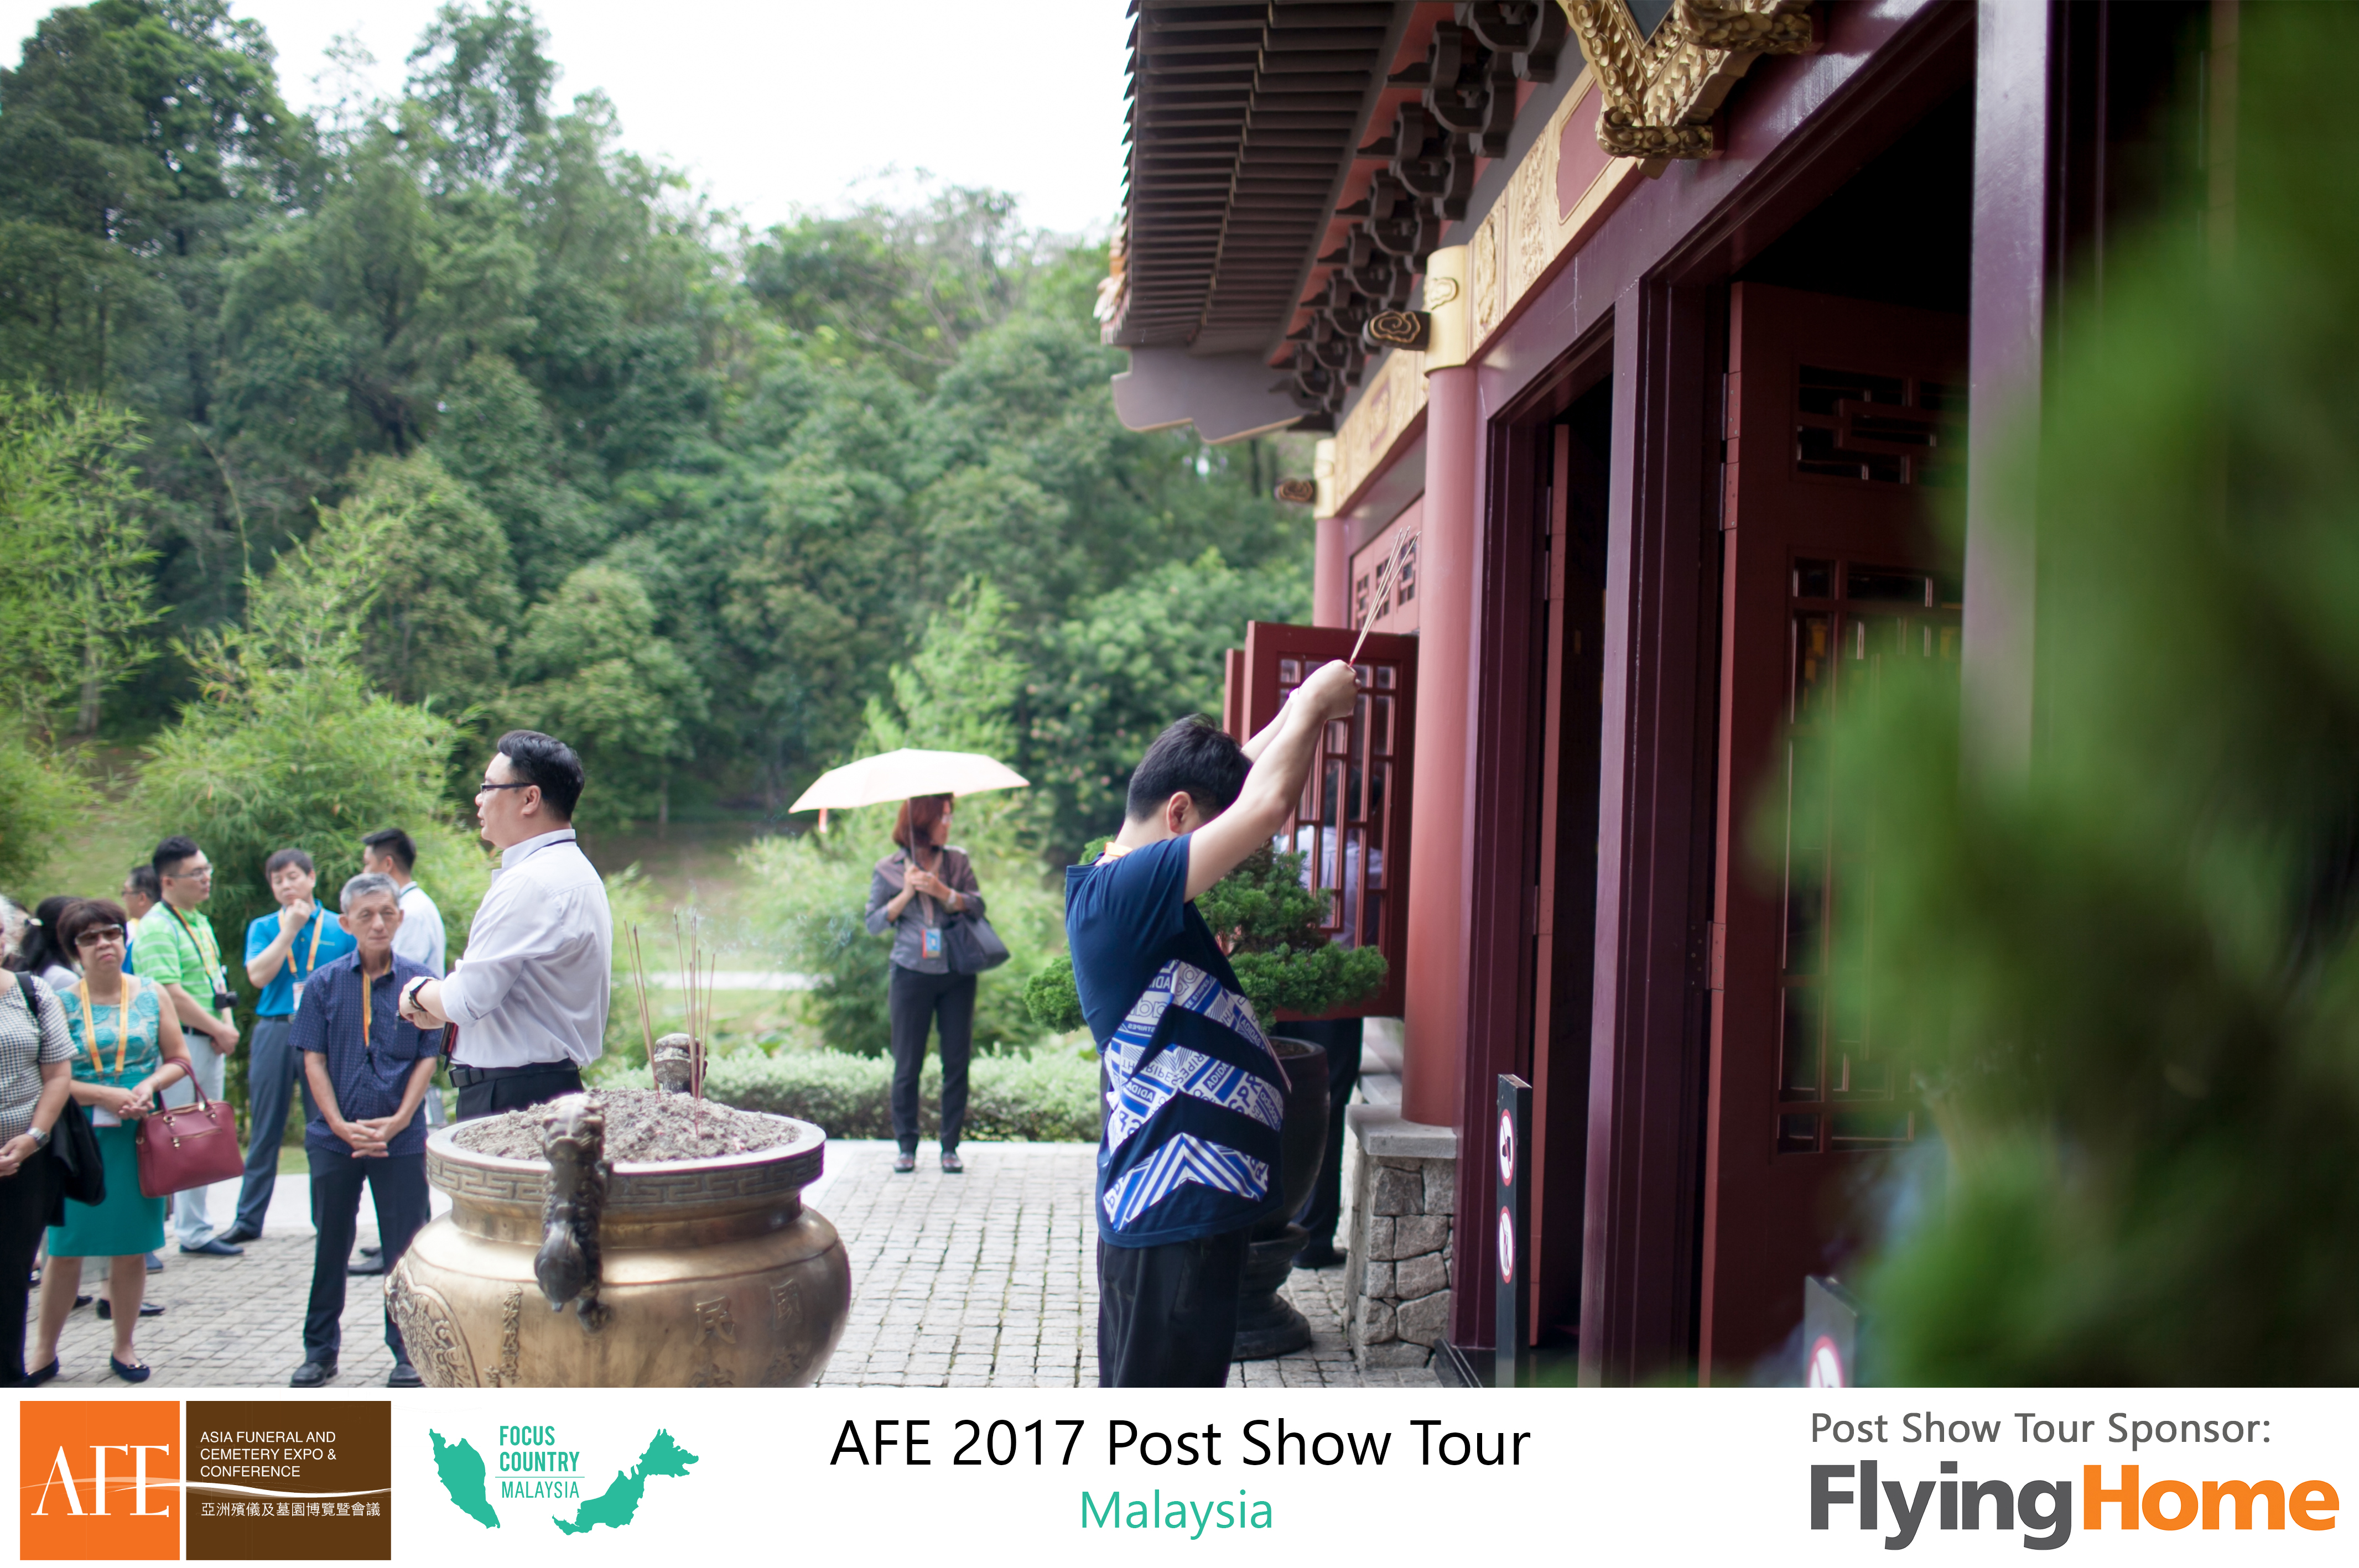 AFE Post Show Tour 2017 Day 3 -48